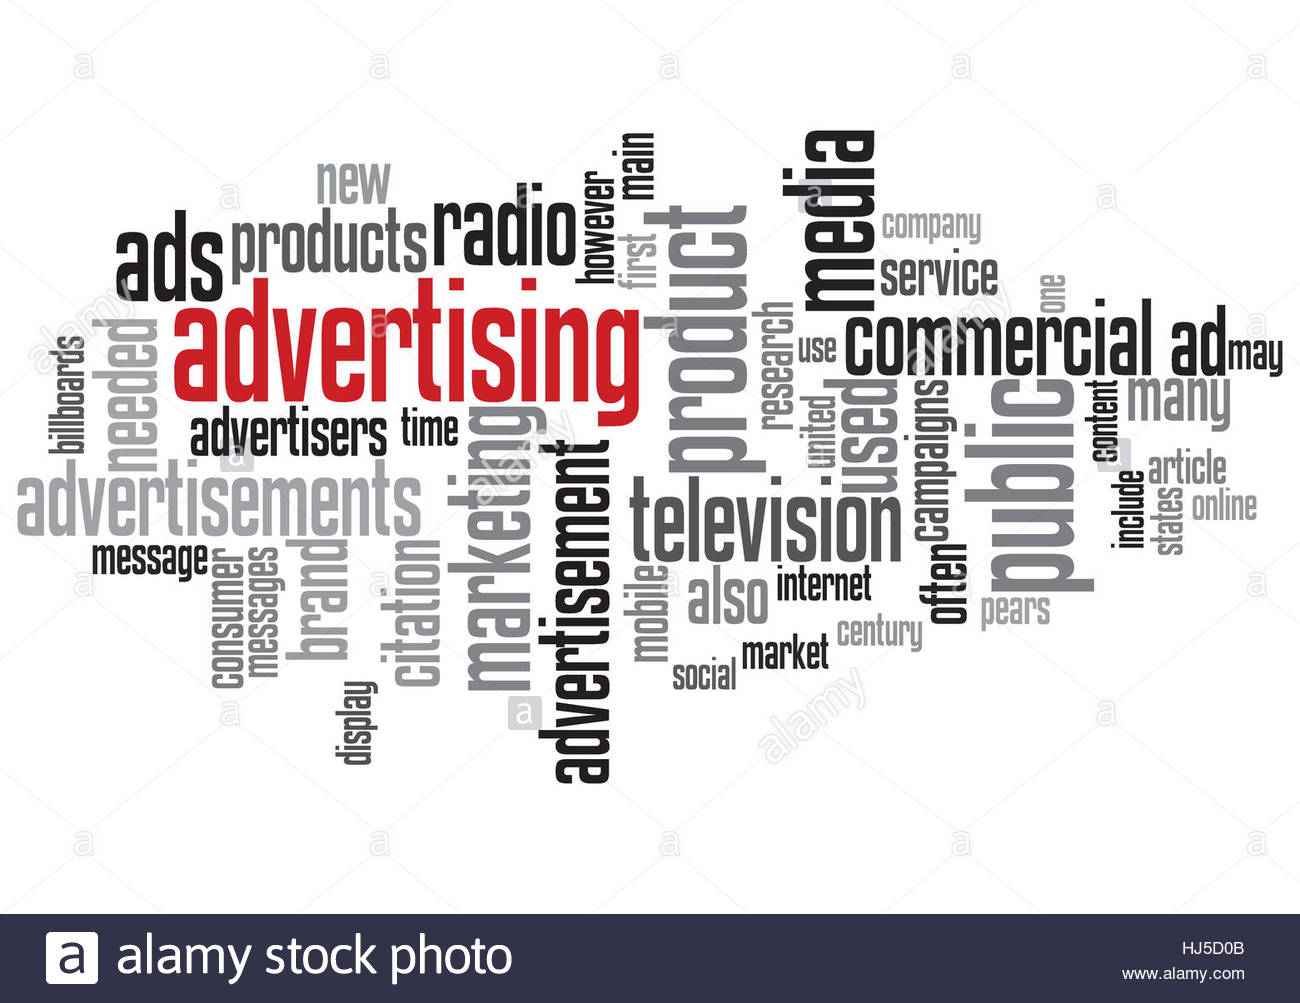 advertisement, advertise, adverts, wooing, marketing, advertising, indication, Stock Photo